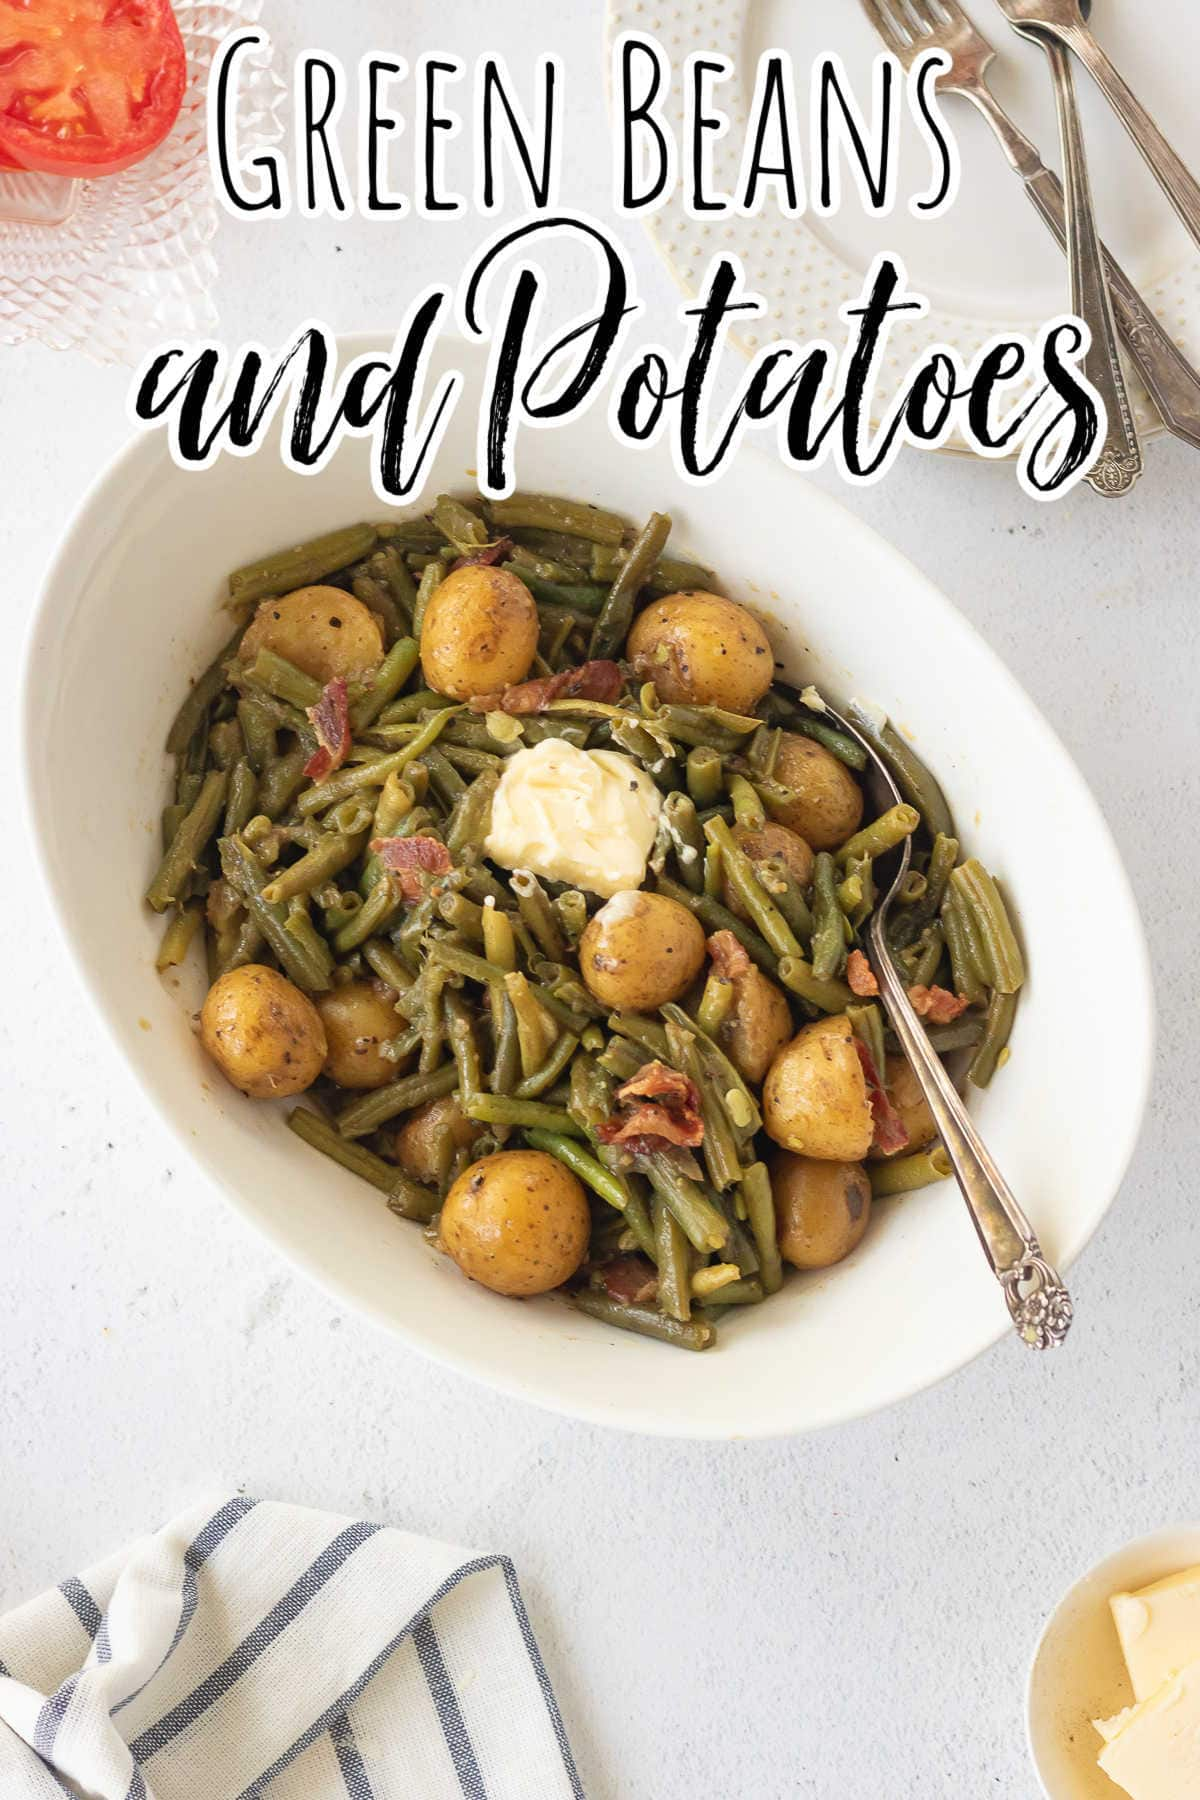 Overhead view of a serving bowl of green beans and potatoes with text overlay for Pinterest.